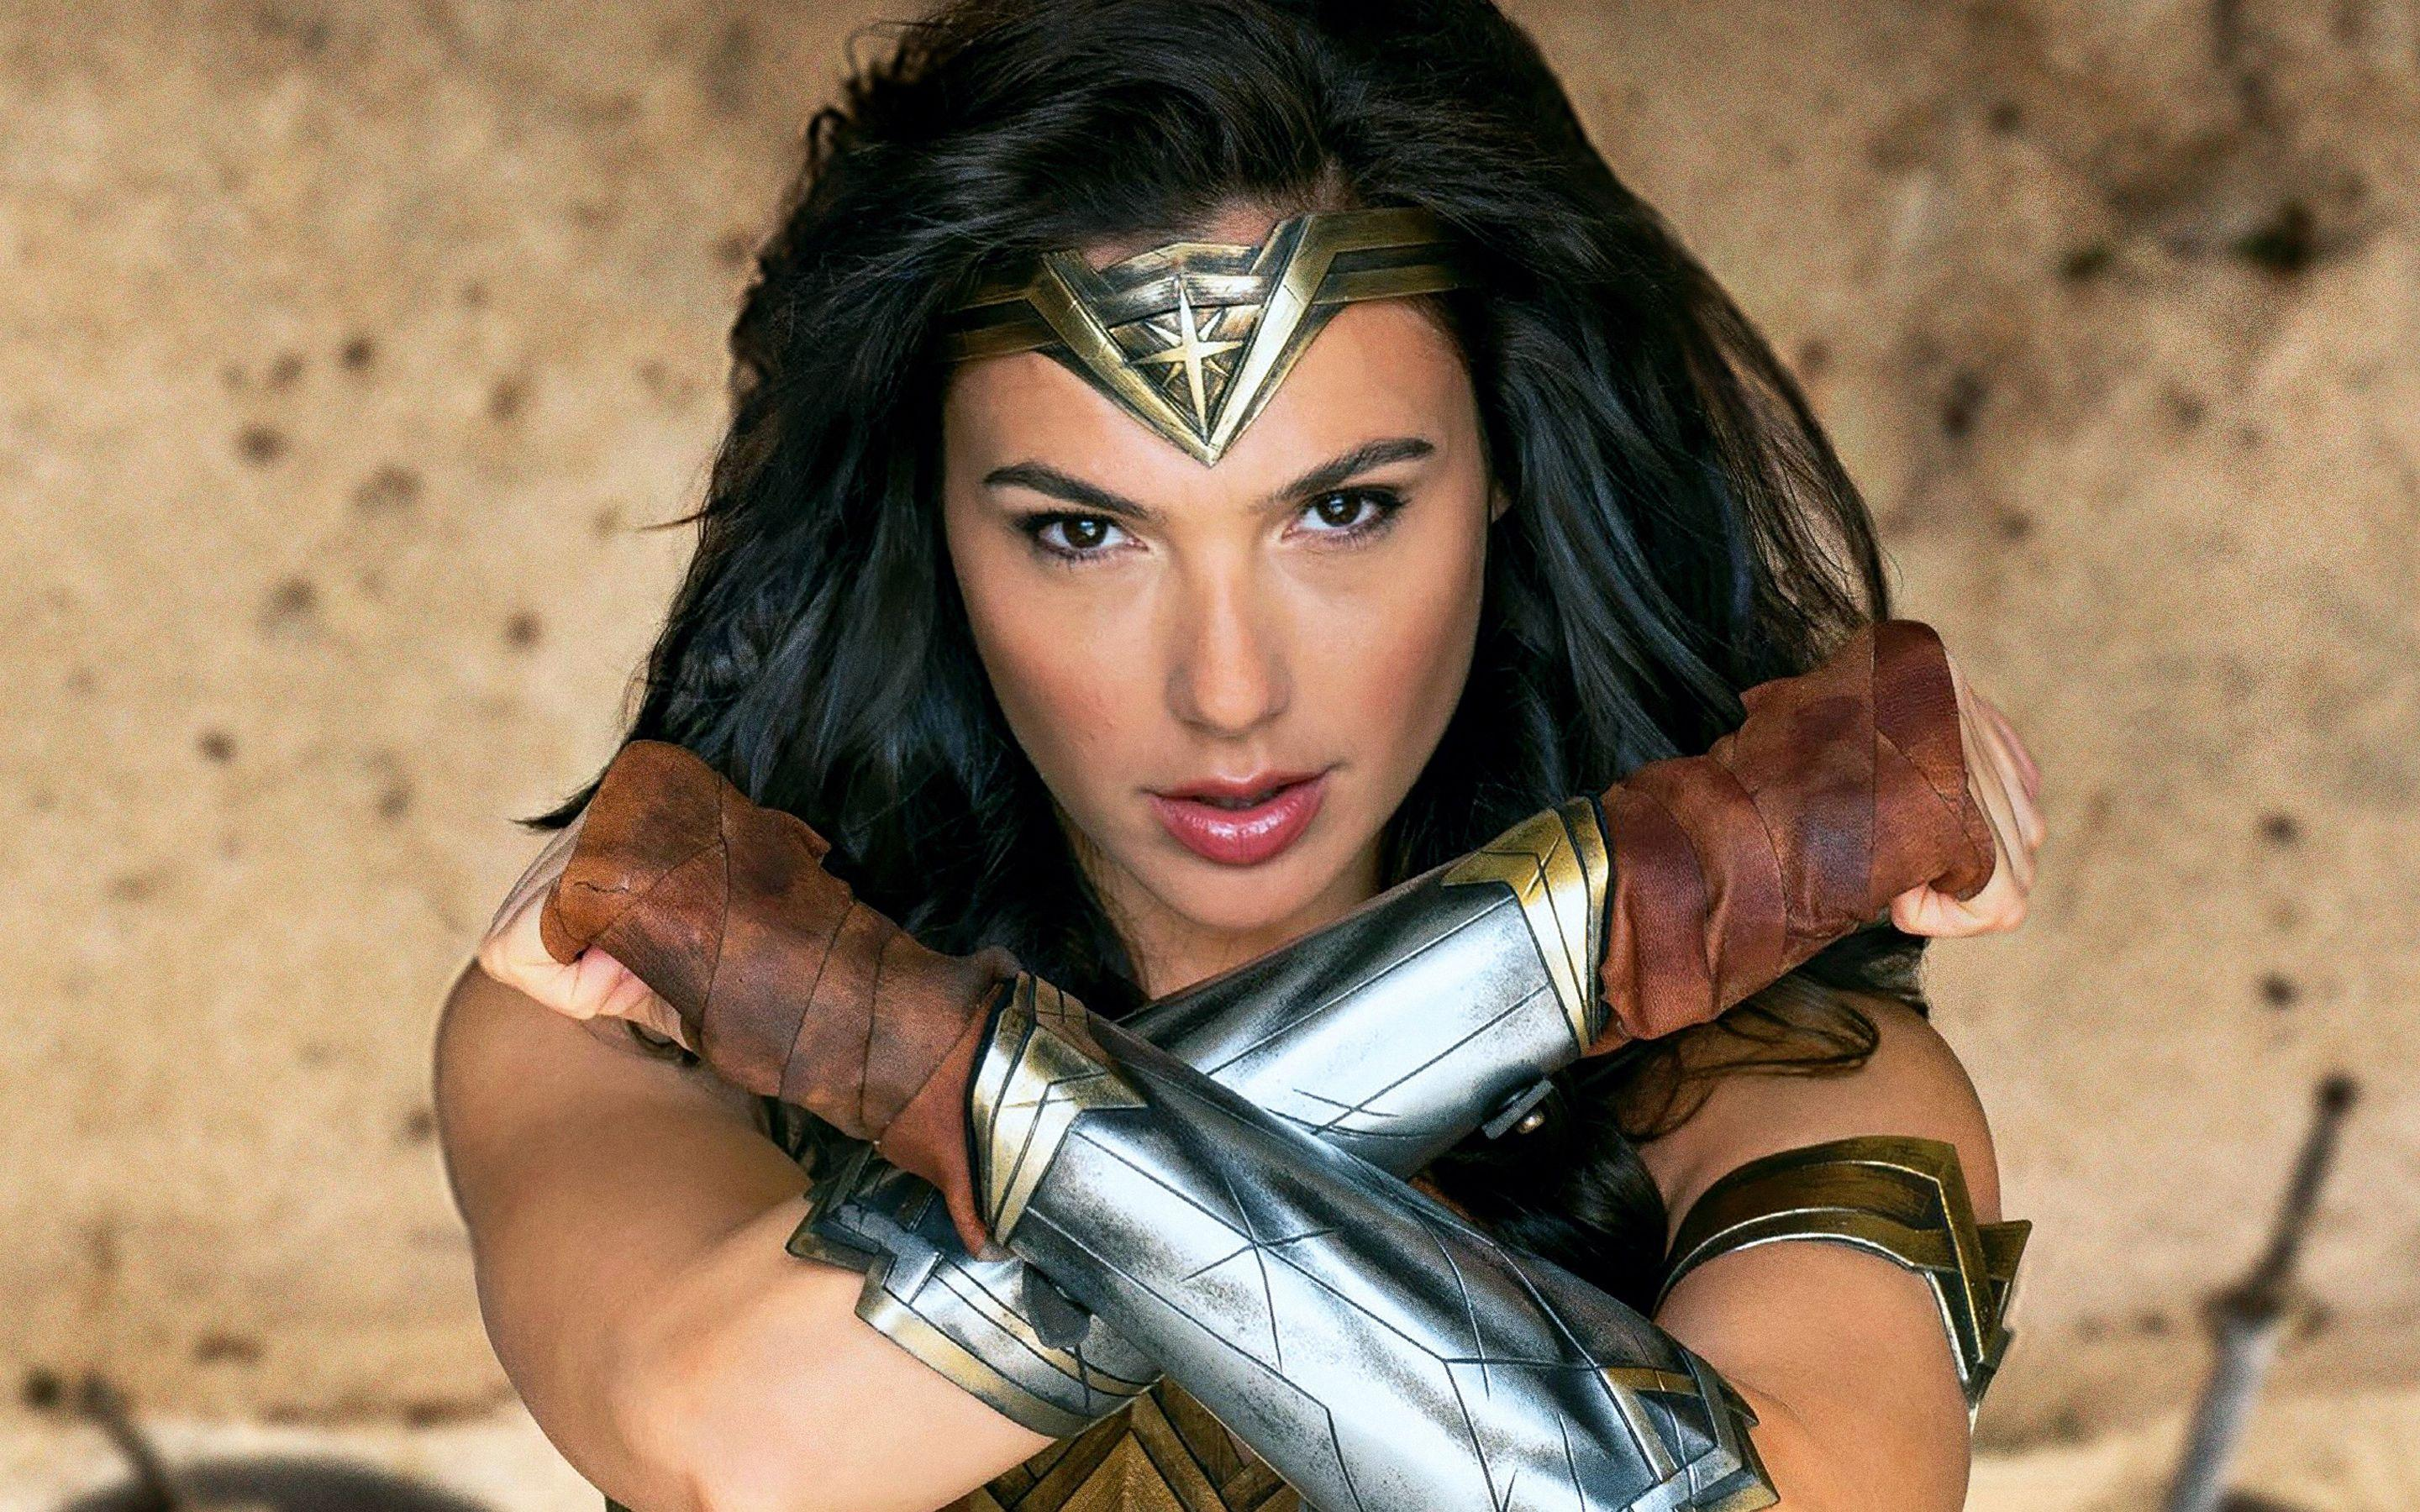 Wonder Woman Gal Gadot 2017 Wallpapers | HD Wallpapers